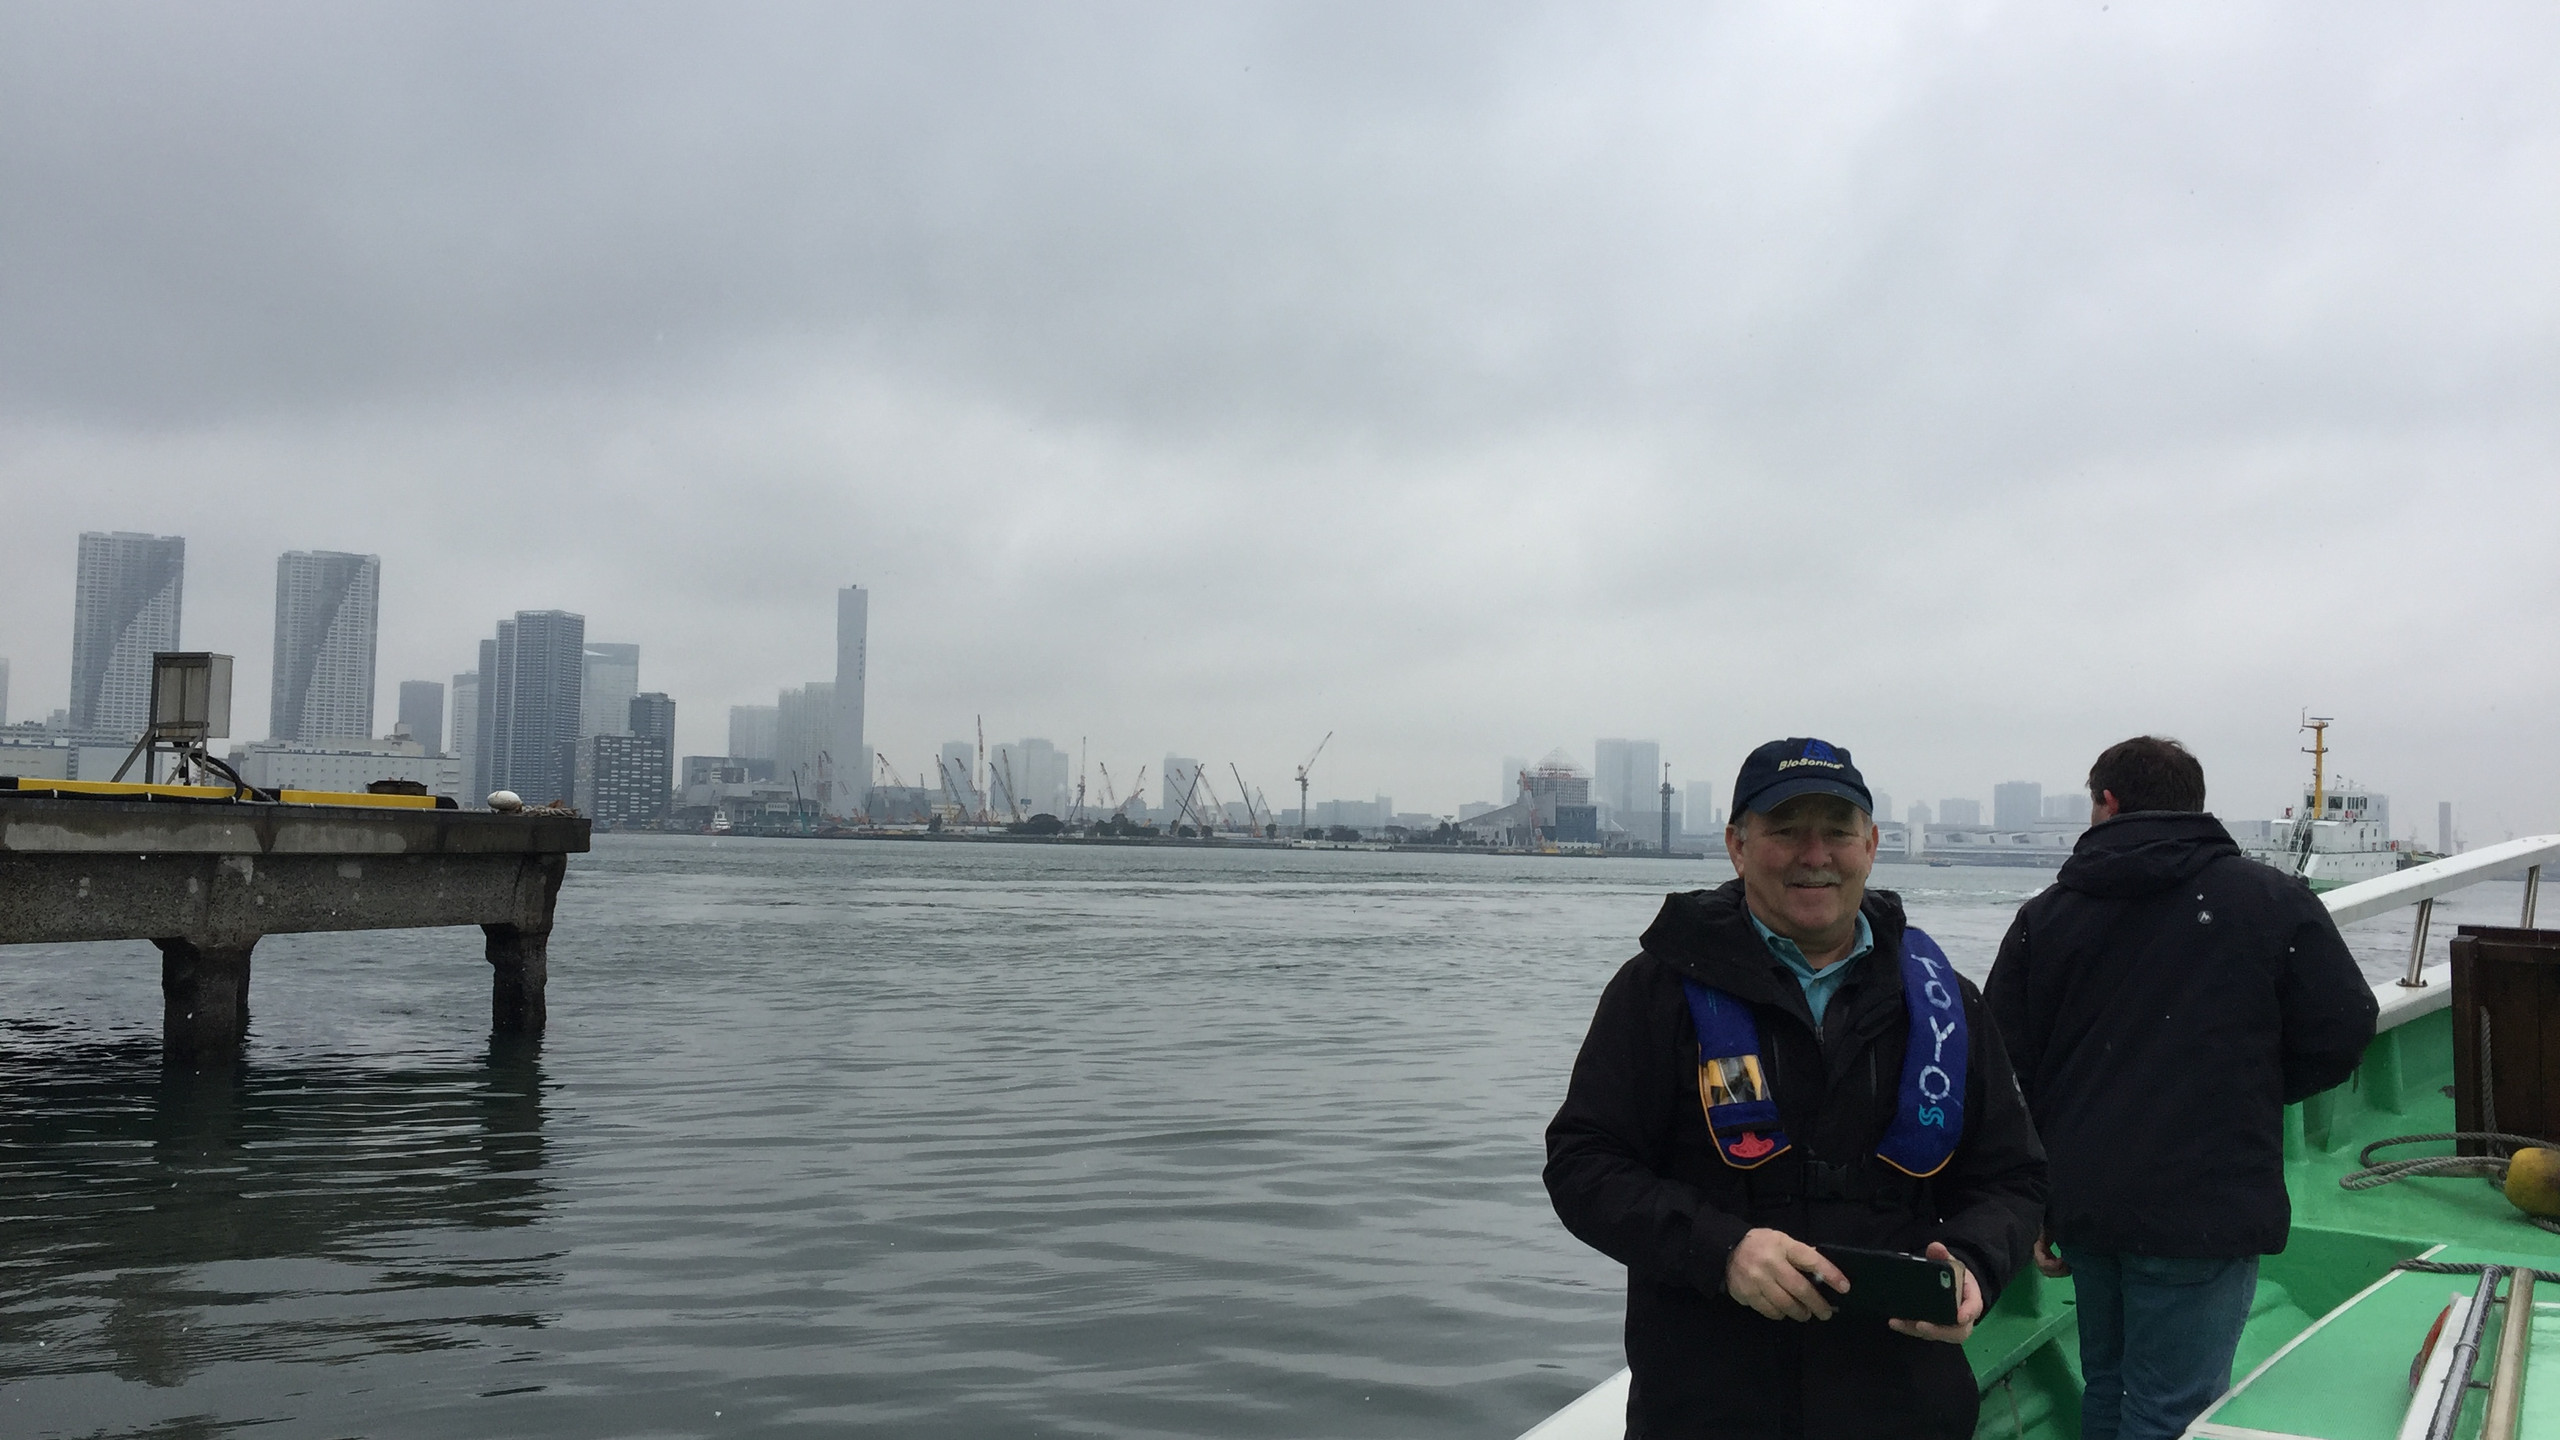 Arriving in Tokyo Bay for demonstrating the DT-X Extreme Echosounder